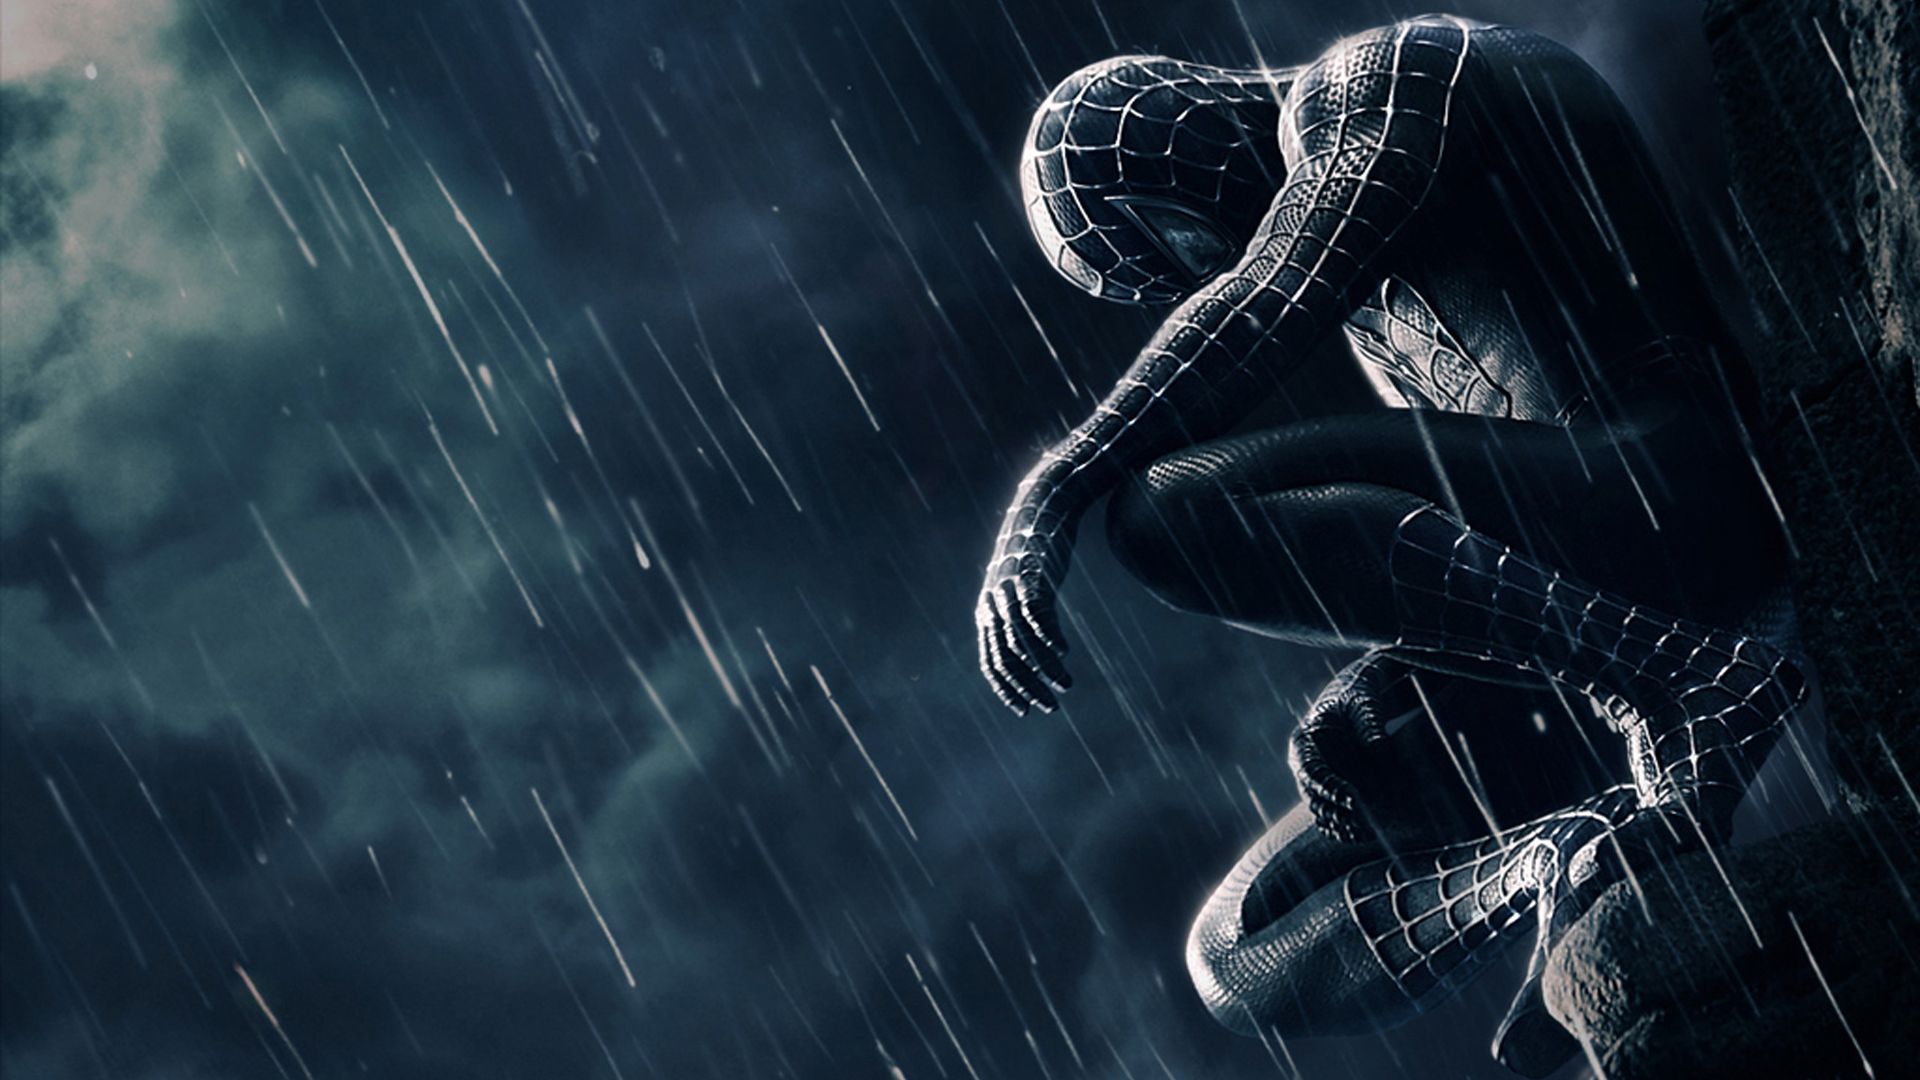 Spider Man 3 Wallpaper Posted By Ethan Tremblay